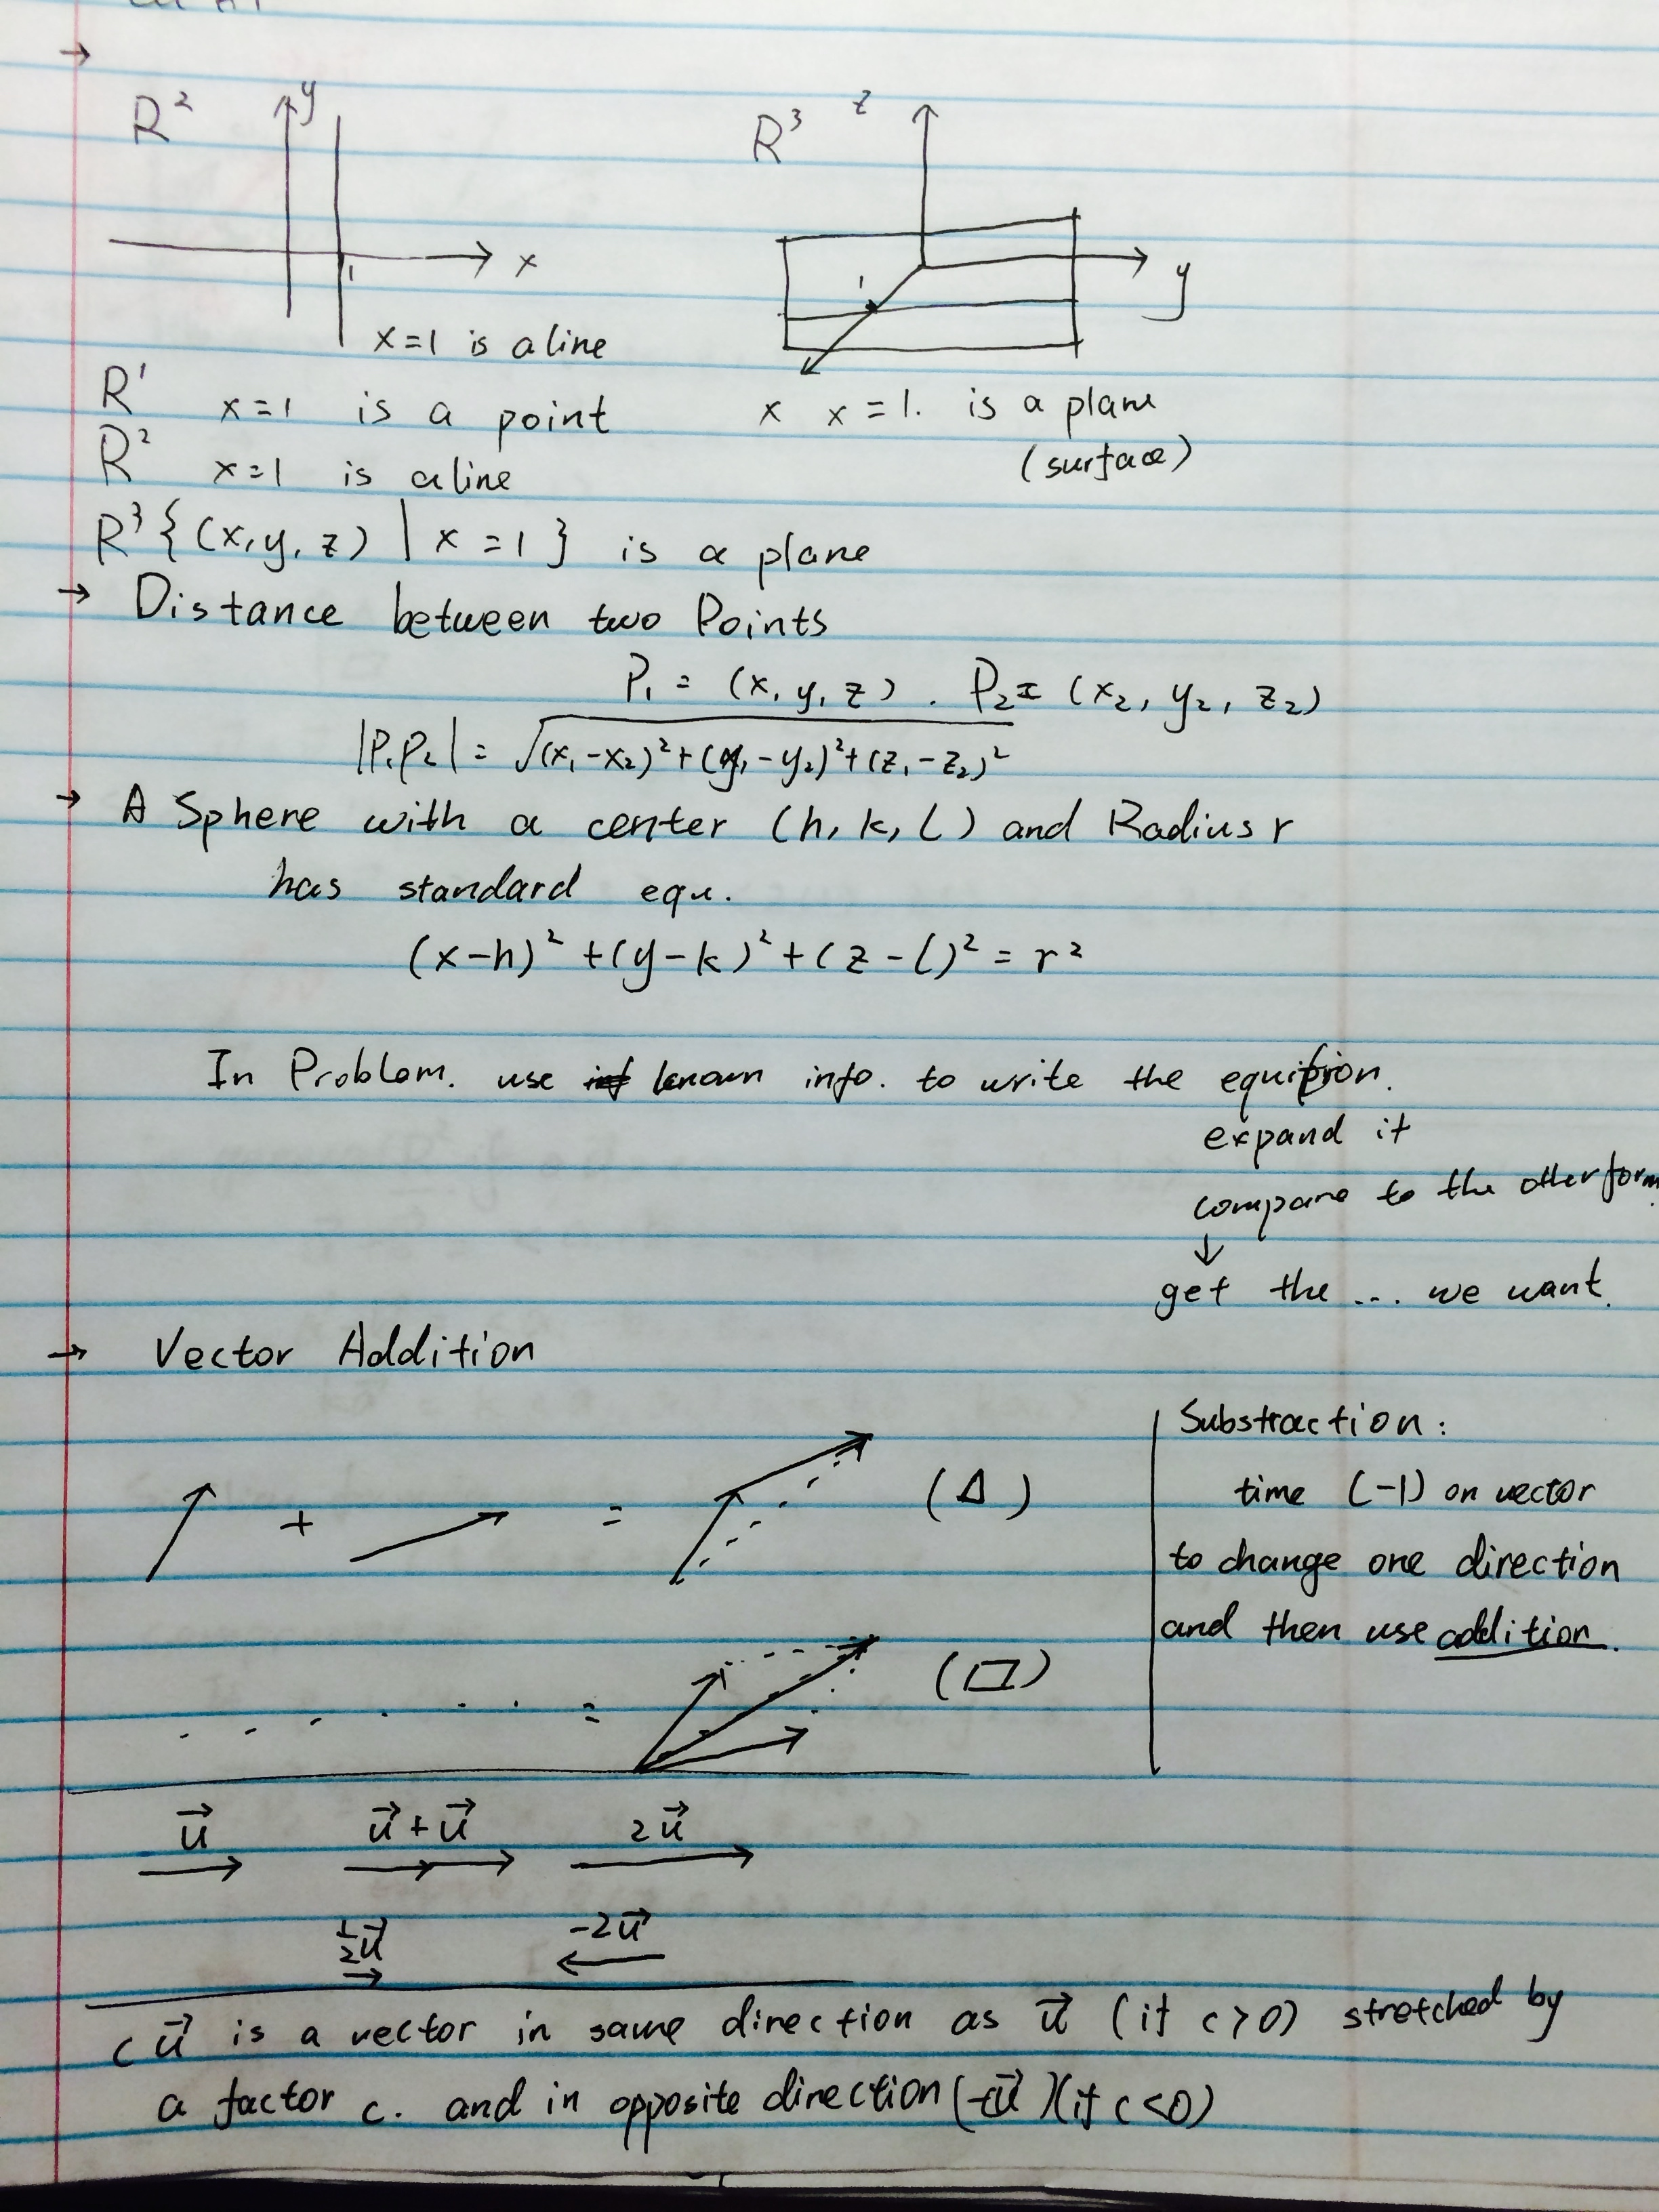 MA 162 - Class Notes - Week 1